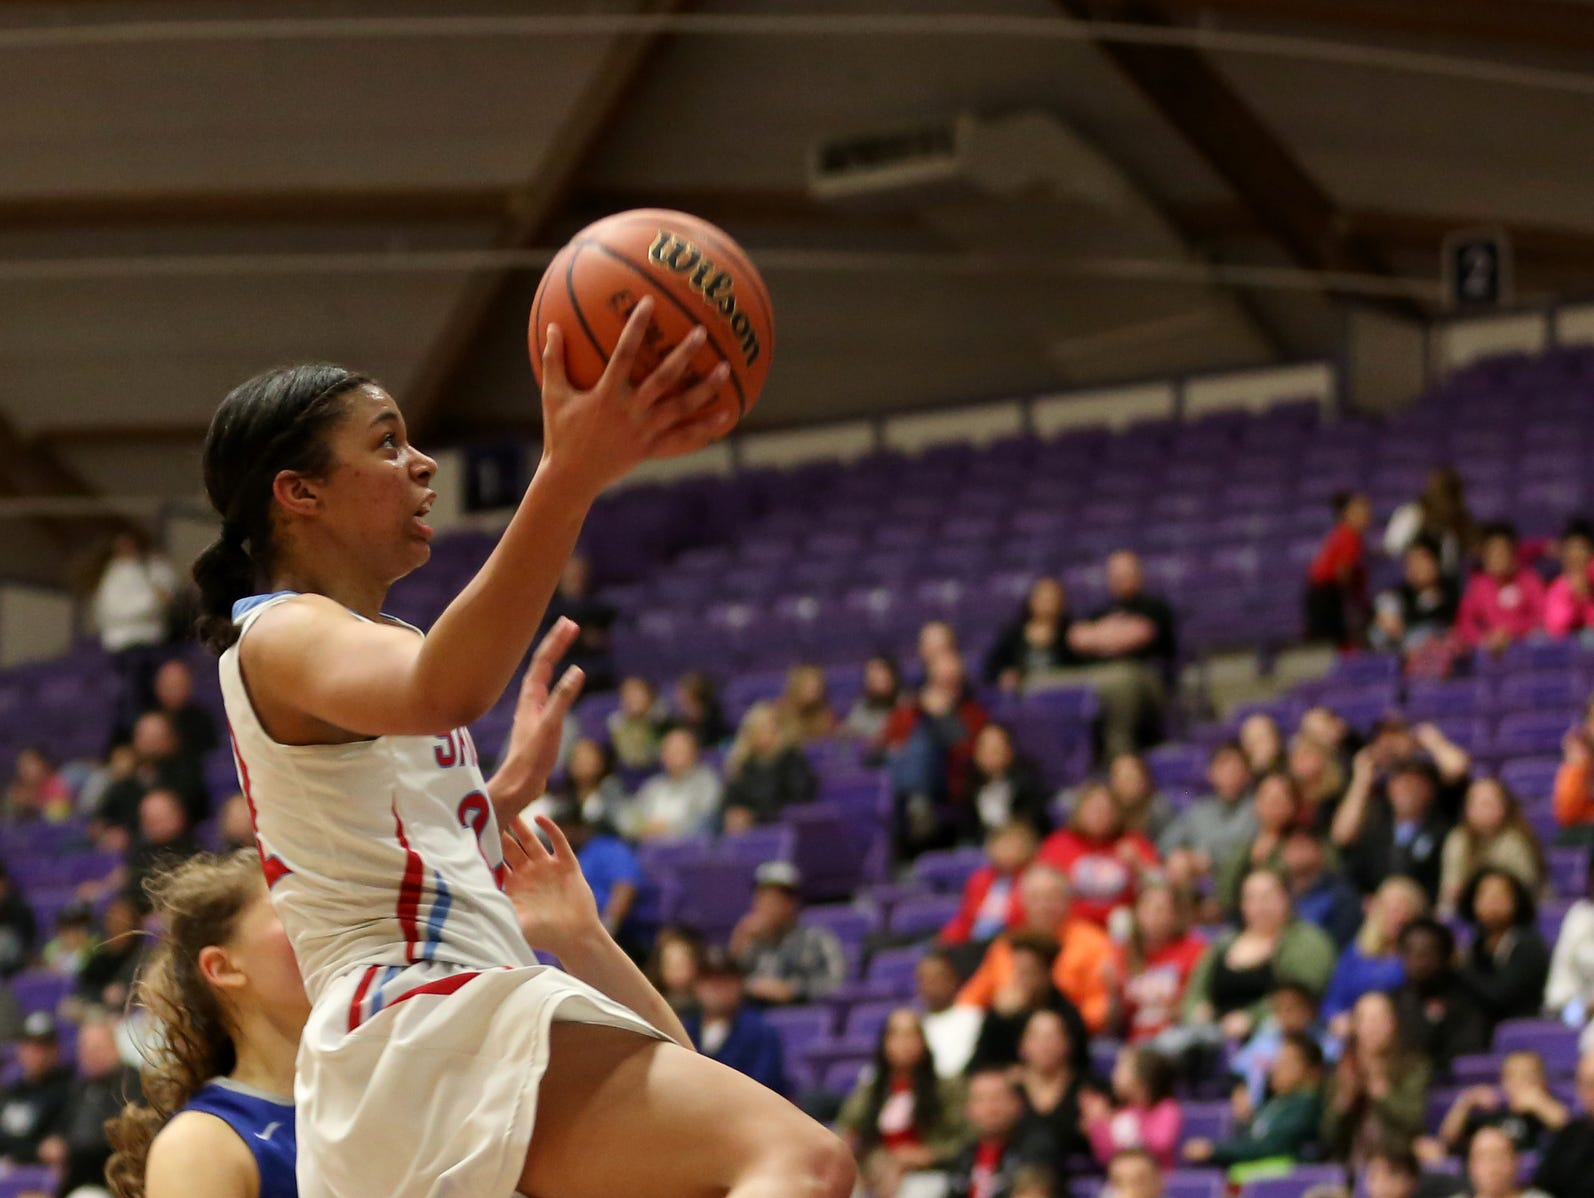 South Salem's Evina Westbrook (22) goes for two points during the second half of the Grant vs. South Salem girl's basketball game to determine third place in the OSAA Class 6A State Championships at the University of Portland on Saturday, March 11, 2017. South Salem won the game 58-53.